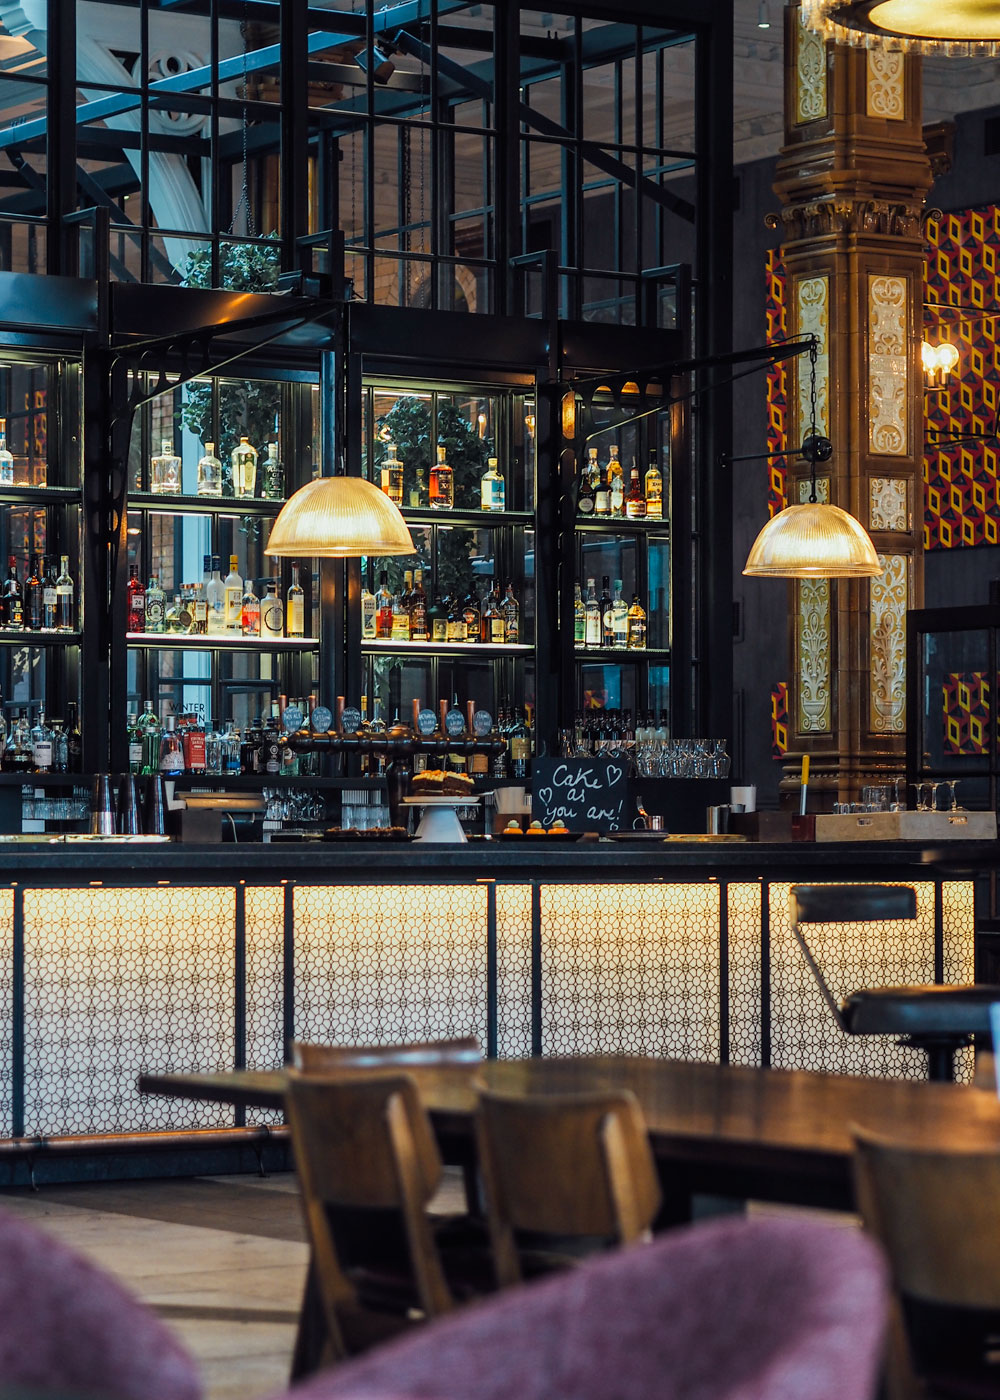 The Grade II Listed Refuge Building in Manchester is now home to The Principal Hotel. I'm showing you some of my interior design highlights from this industrial-inspired five star hotel.